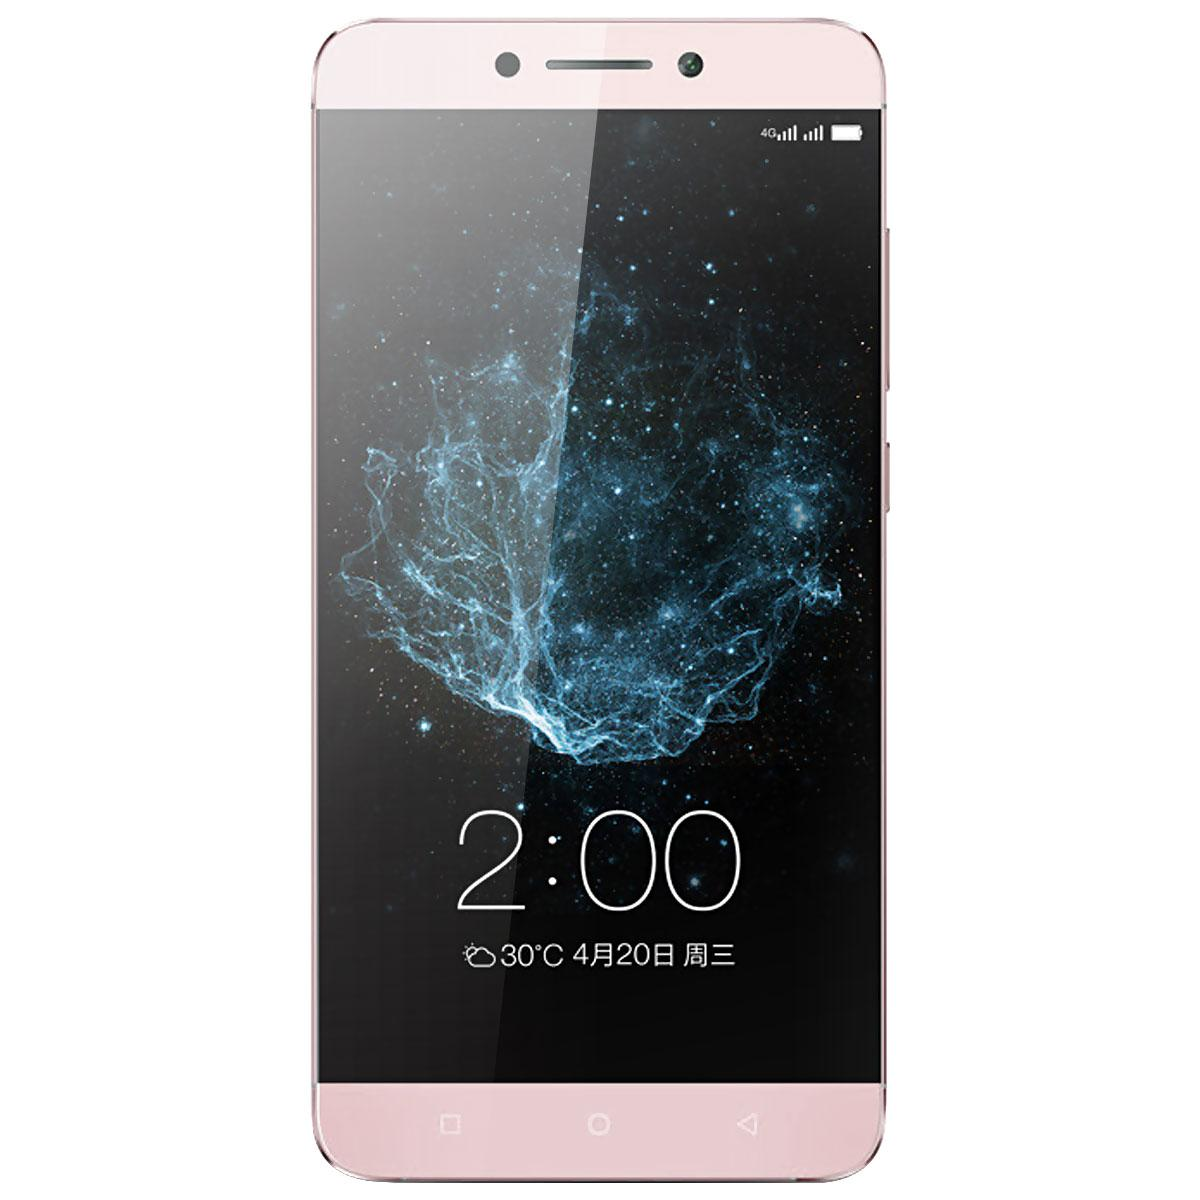 LeEco LeTV X520 3+64GB Smartphone Rose gold